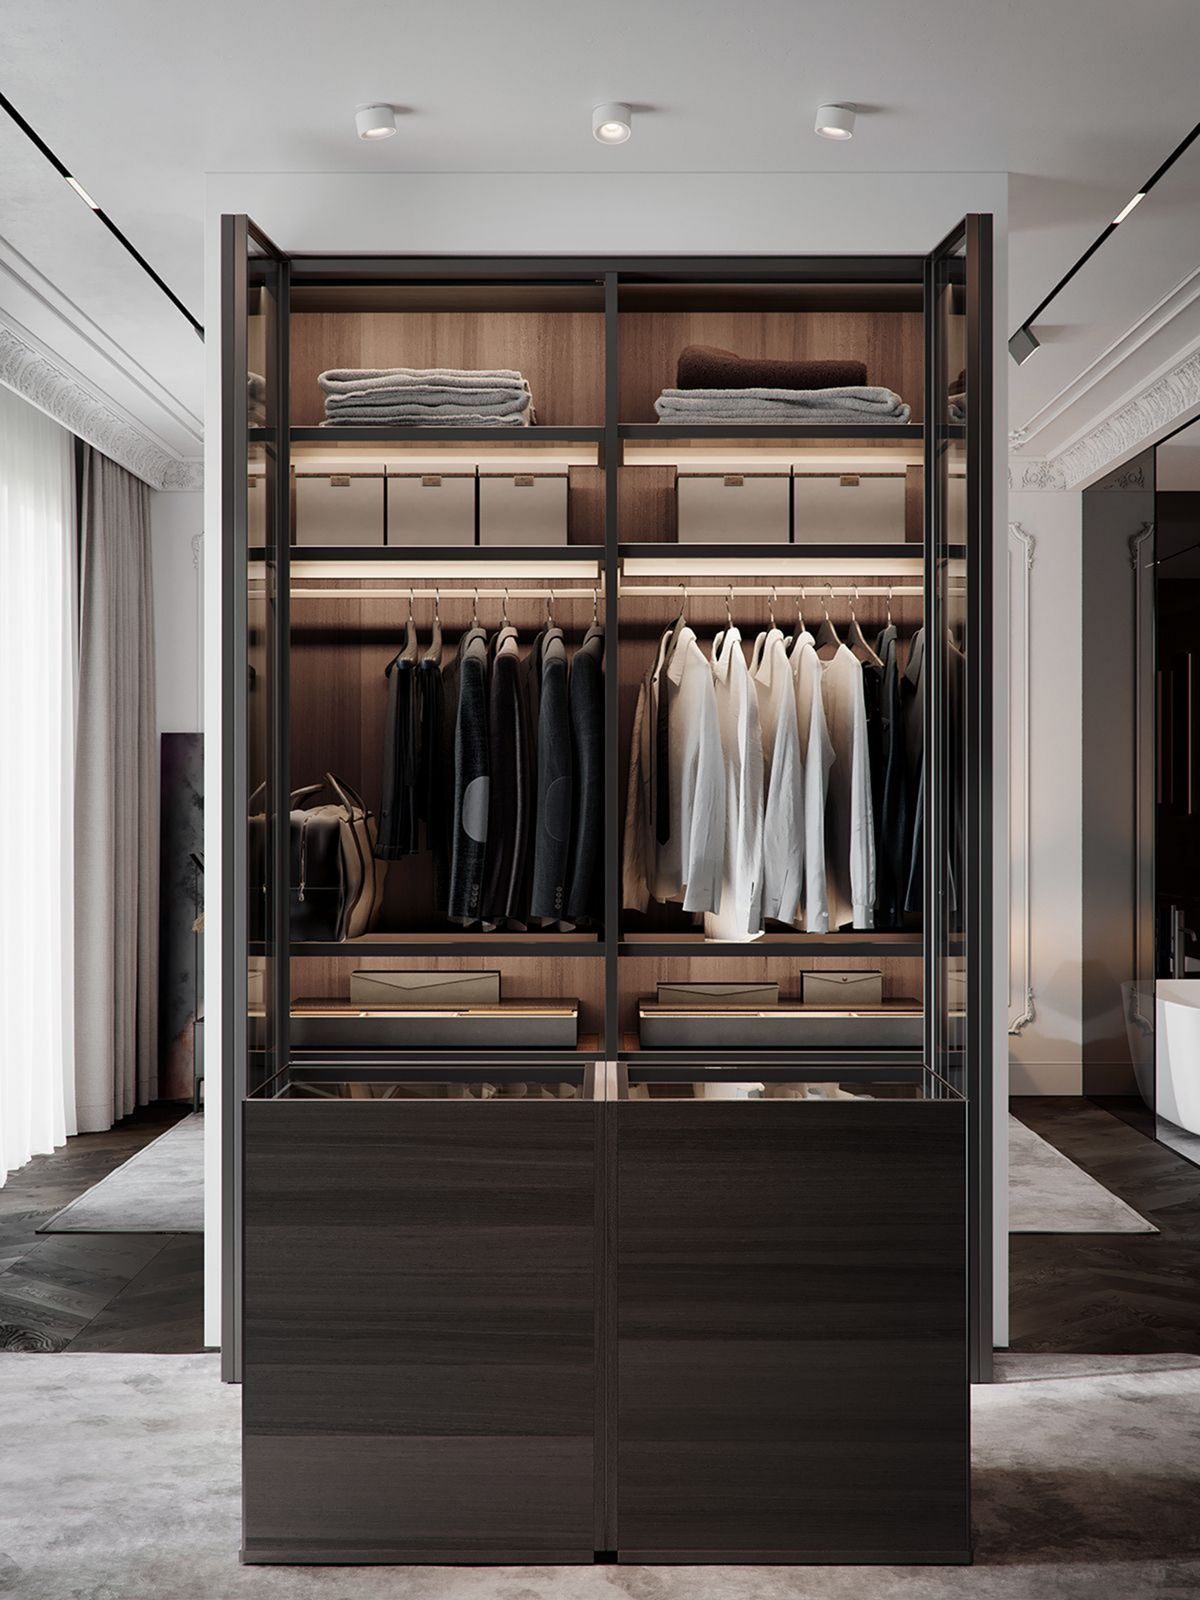 Garderobe Modern Design Top 30 Modern Wardrobe Design Ideas For Your Small Bedroom ...